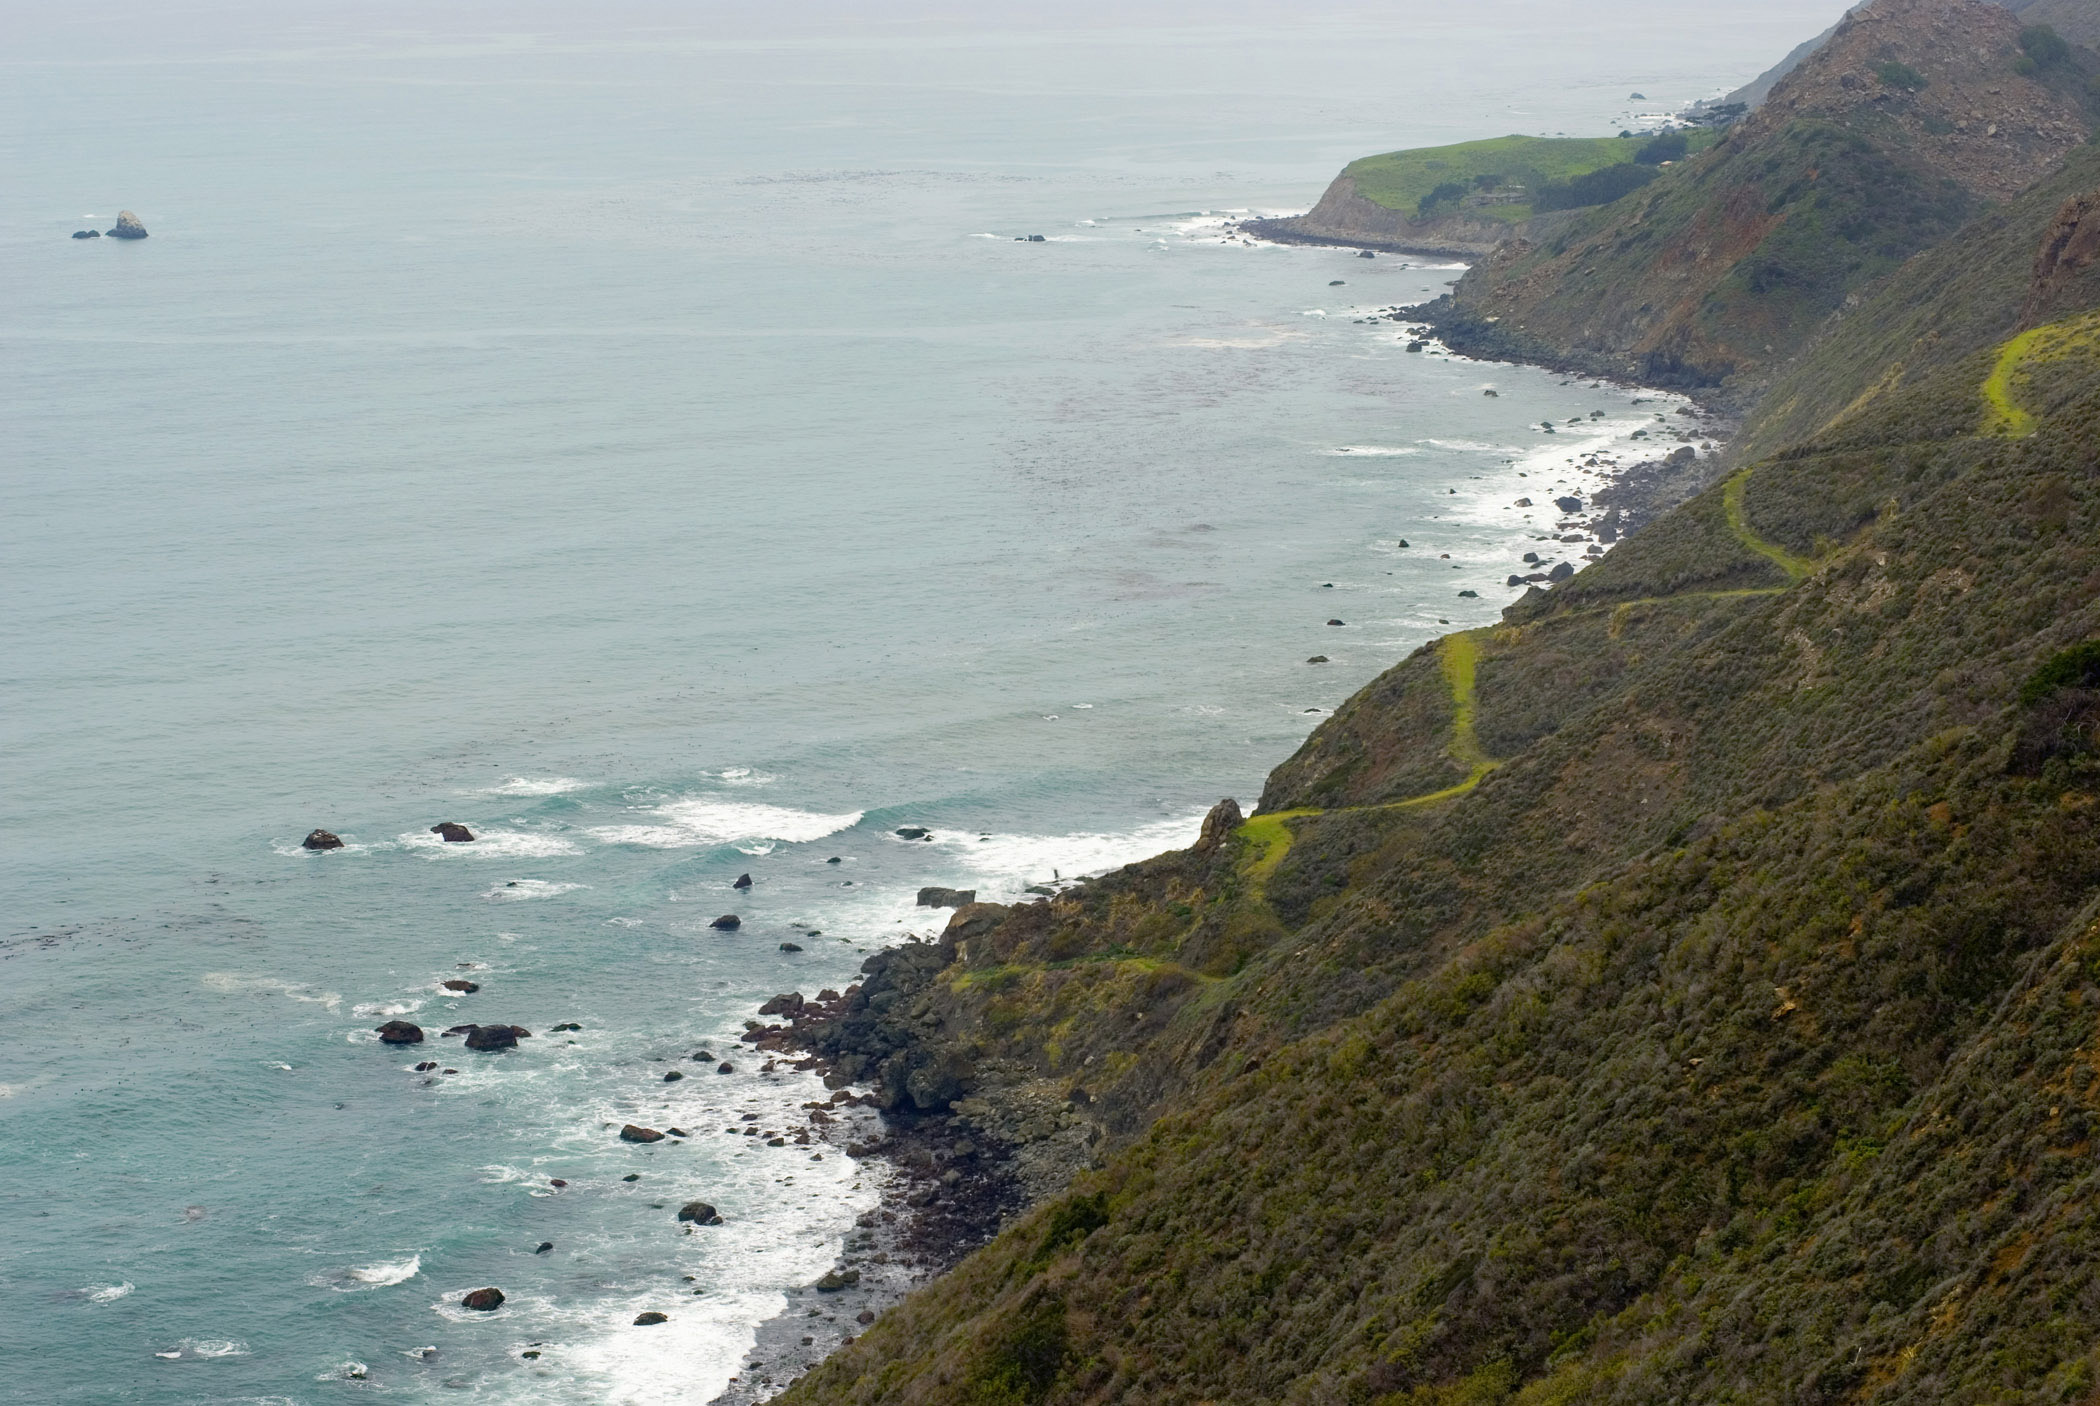 Beautiful Big Sur Coast with Grassy Hill in Aerial View. A Perfect Place for Vacation.